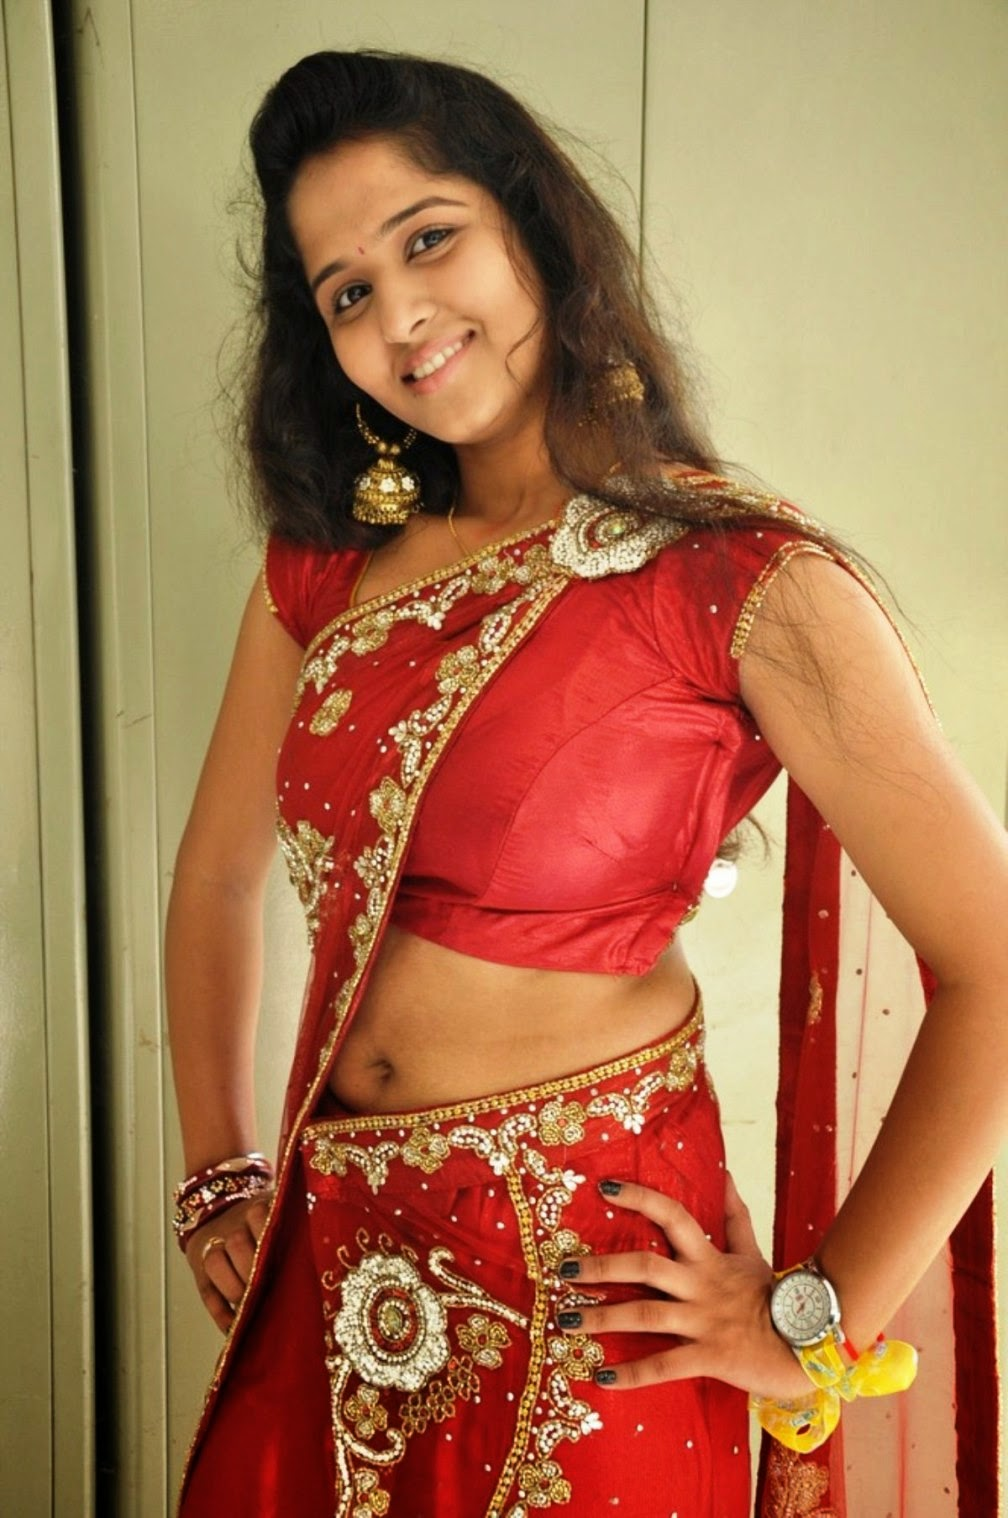 Nude desi boobs red blouse